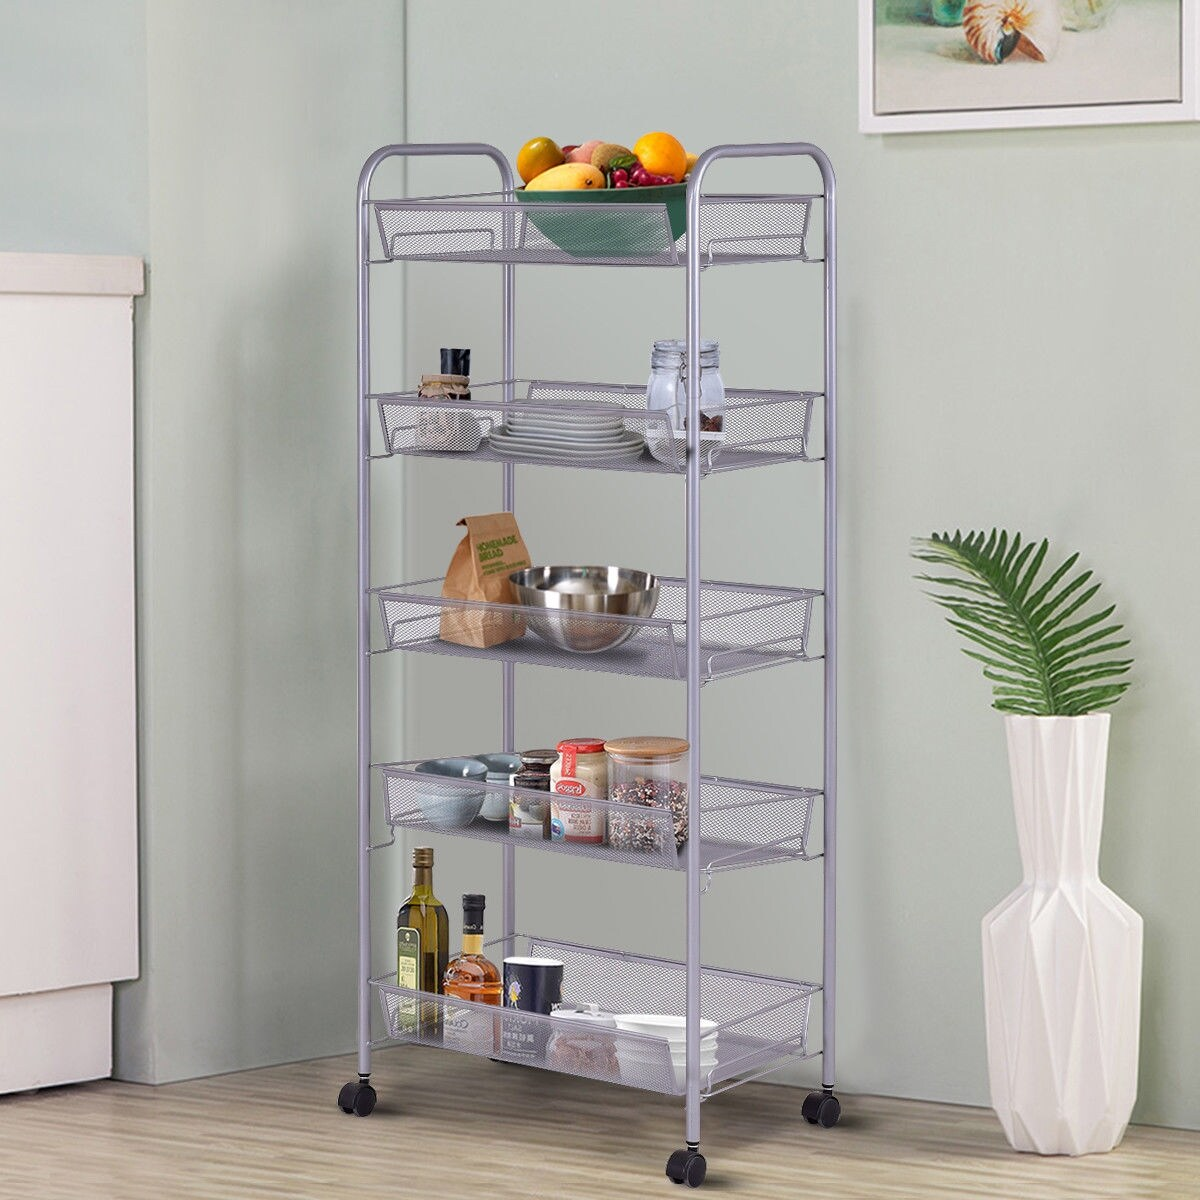 Kitchen Organizer Storage Costway 5 Tier Storage Rack Trolley Cart Home Kitchen Organizer Utility Baskets Sliver